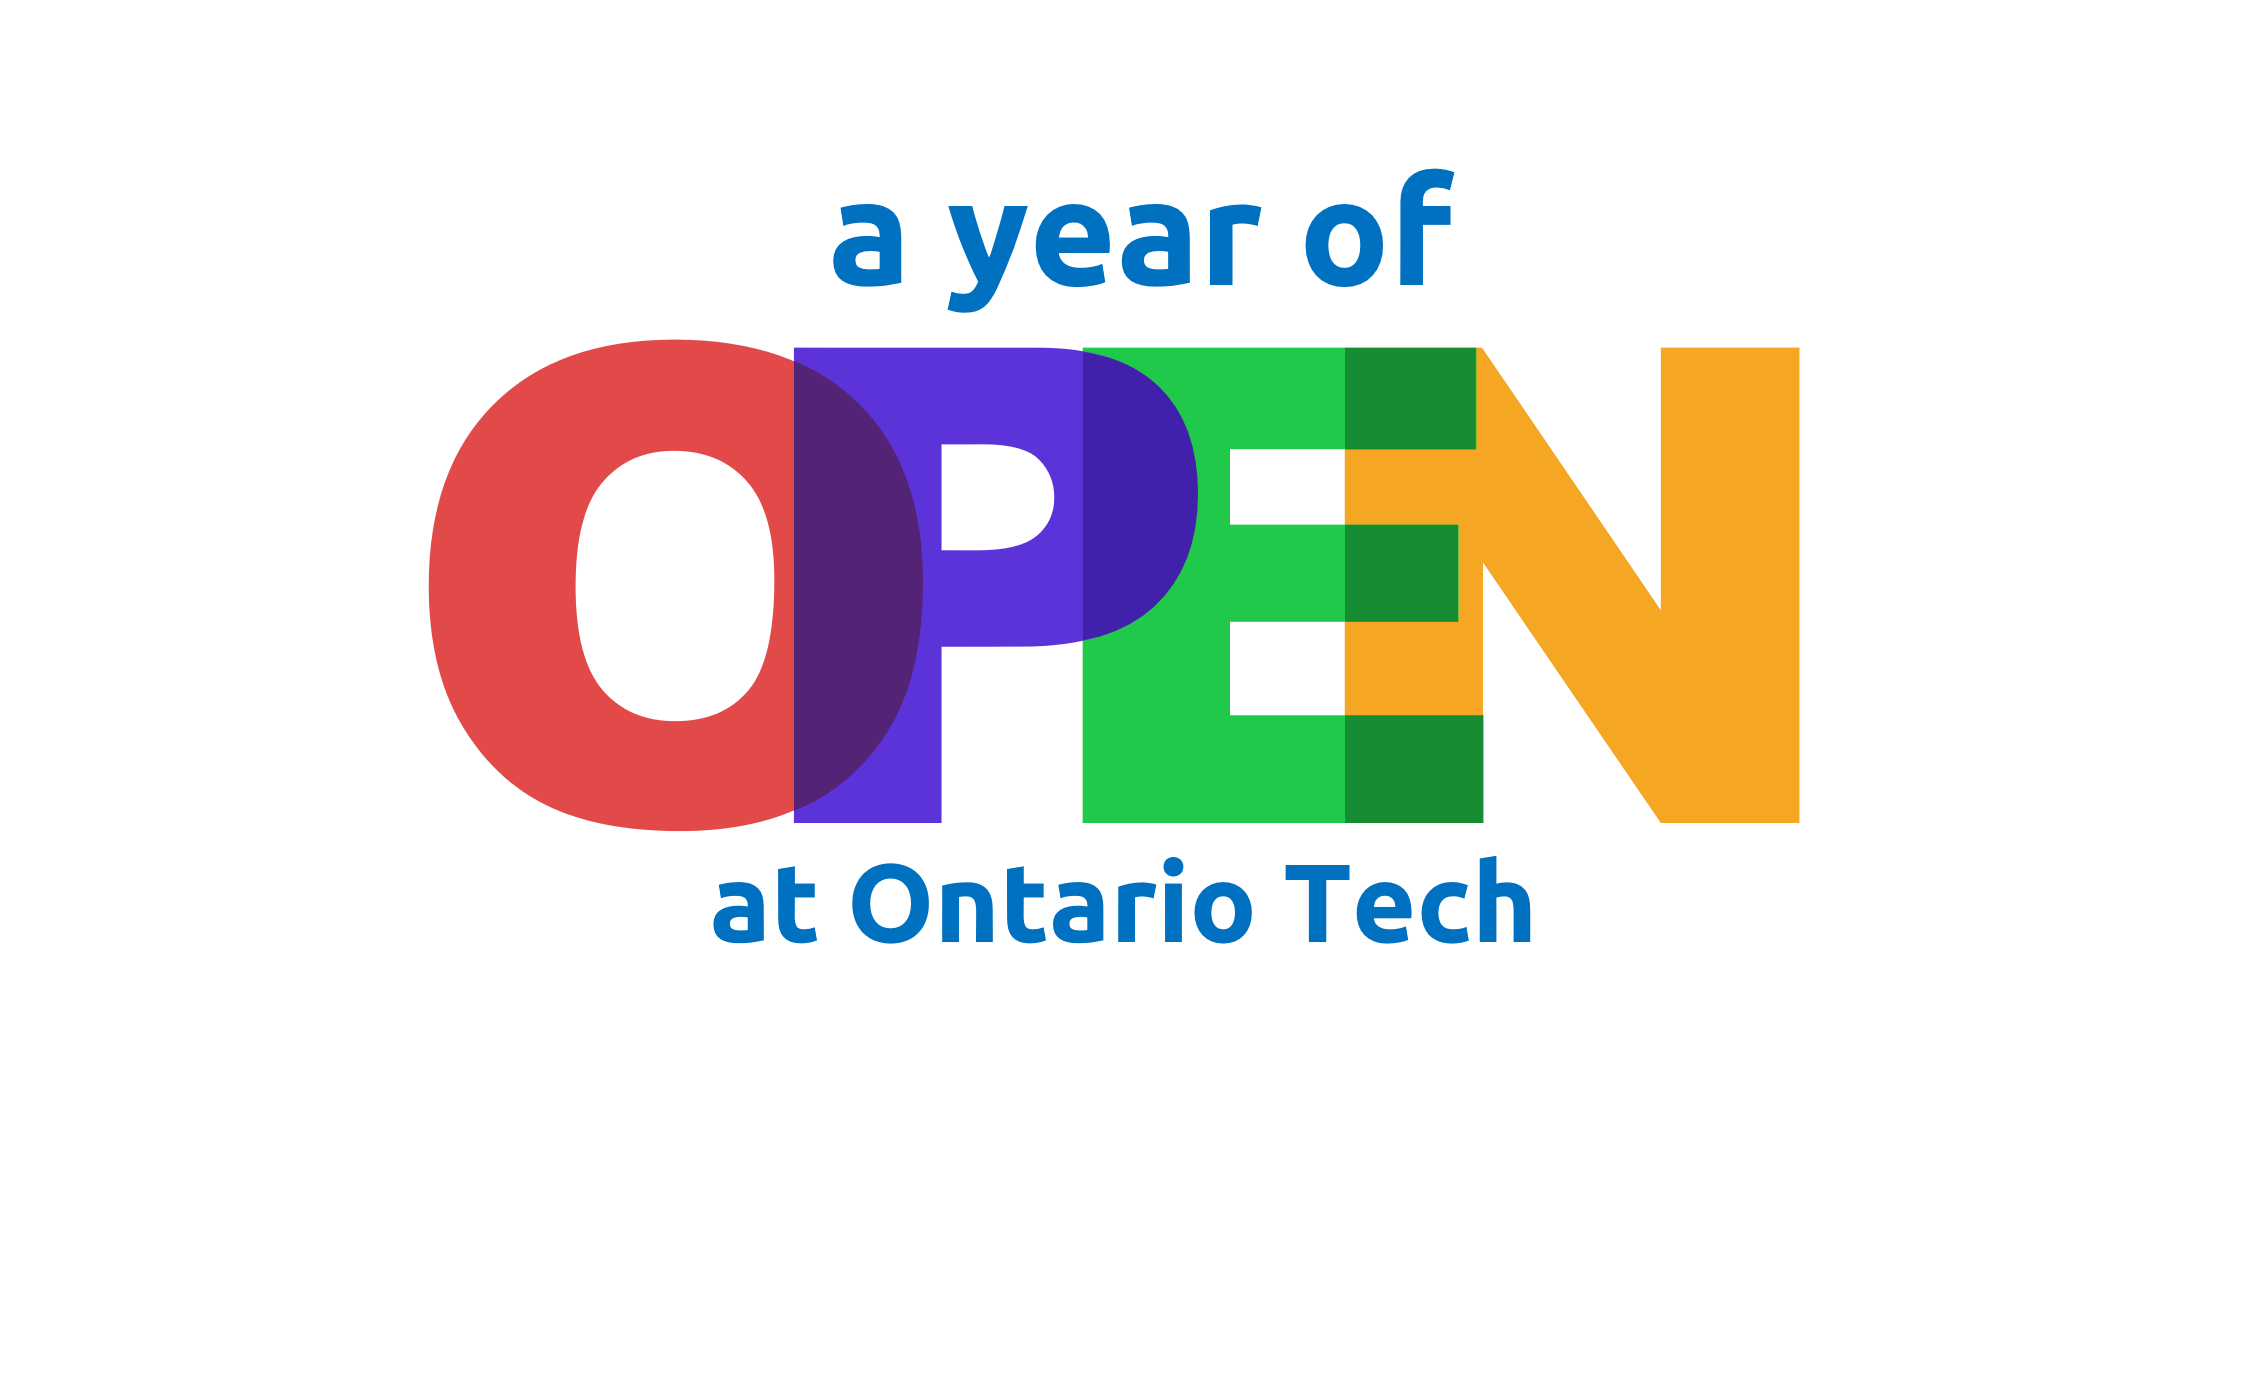 A Year of Open at Ontario Tech.